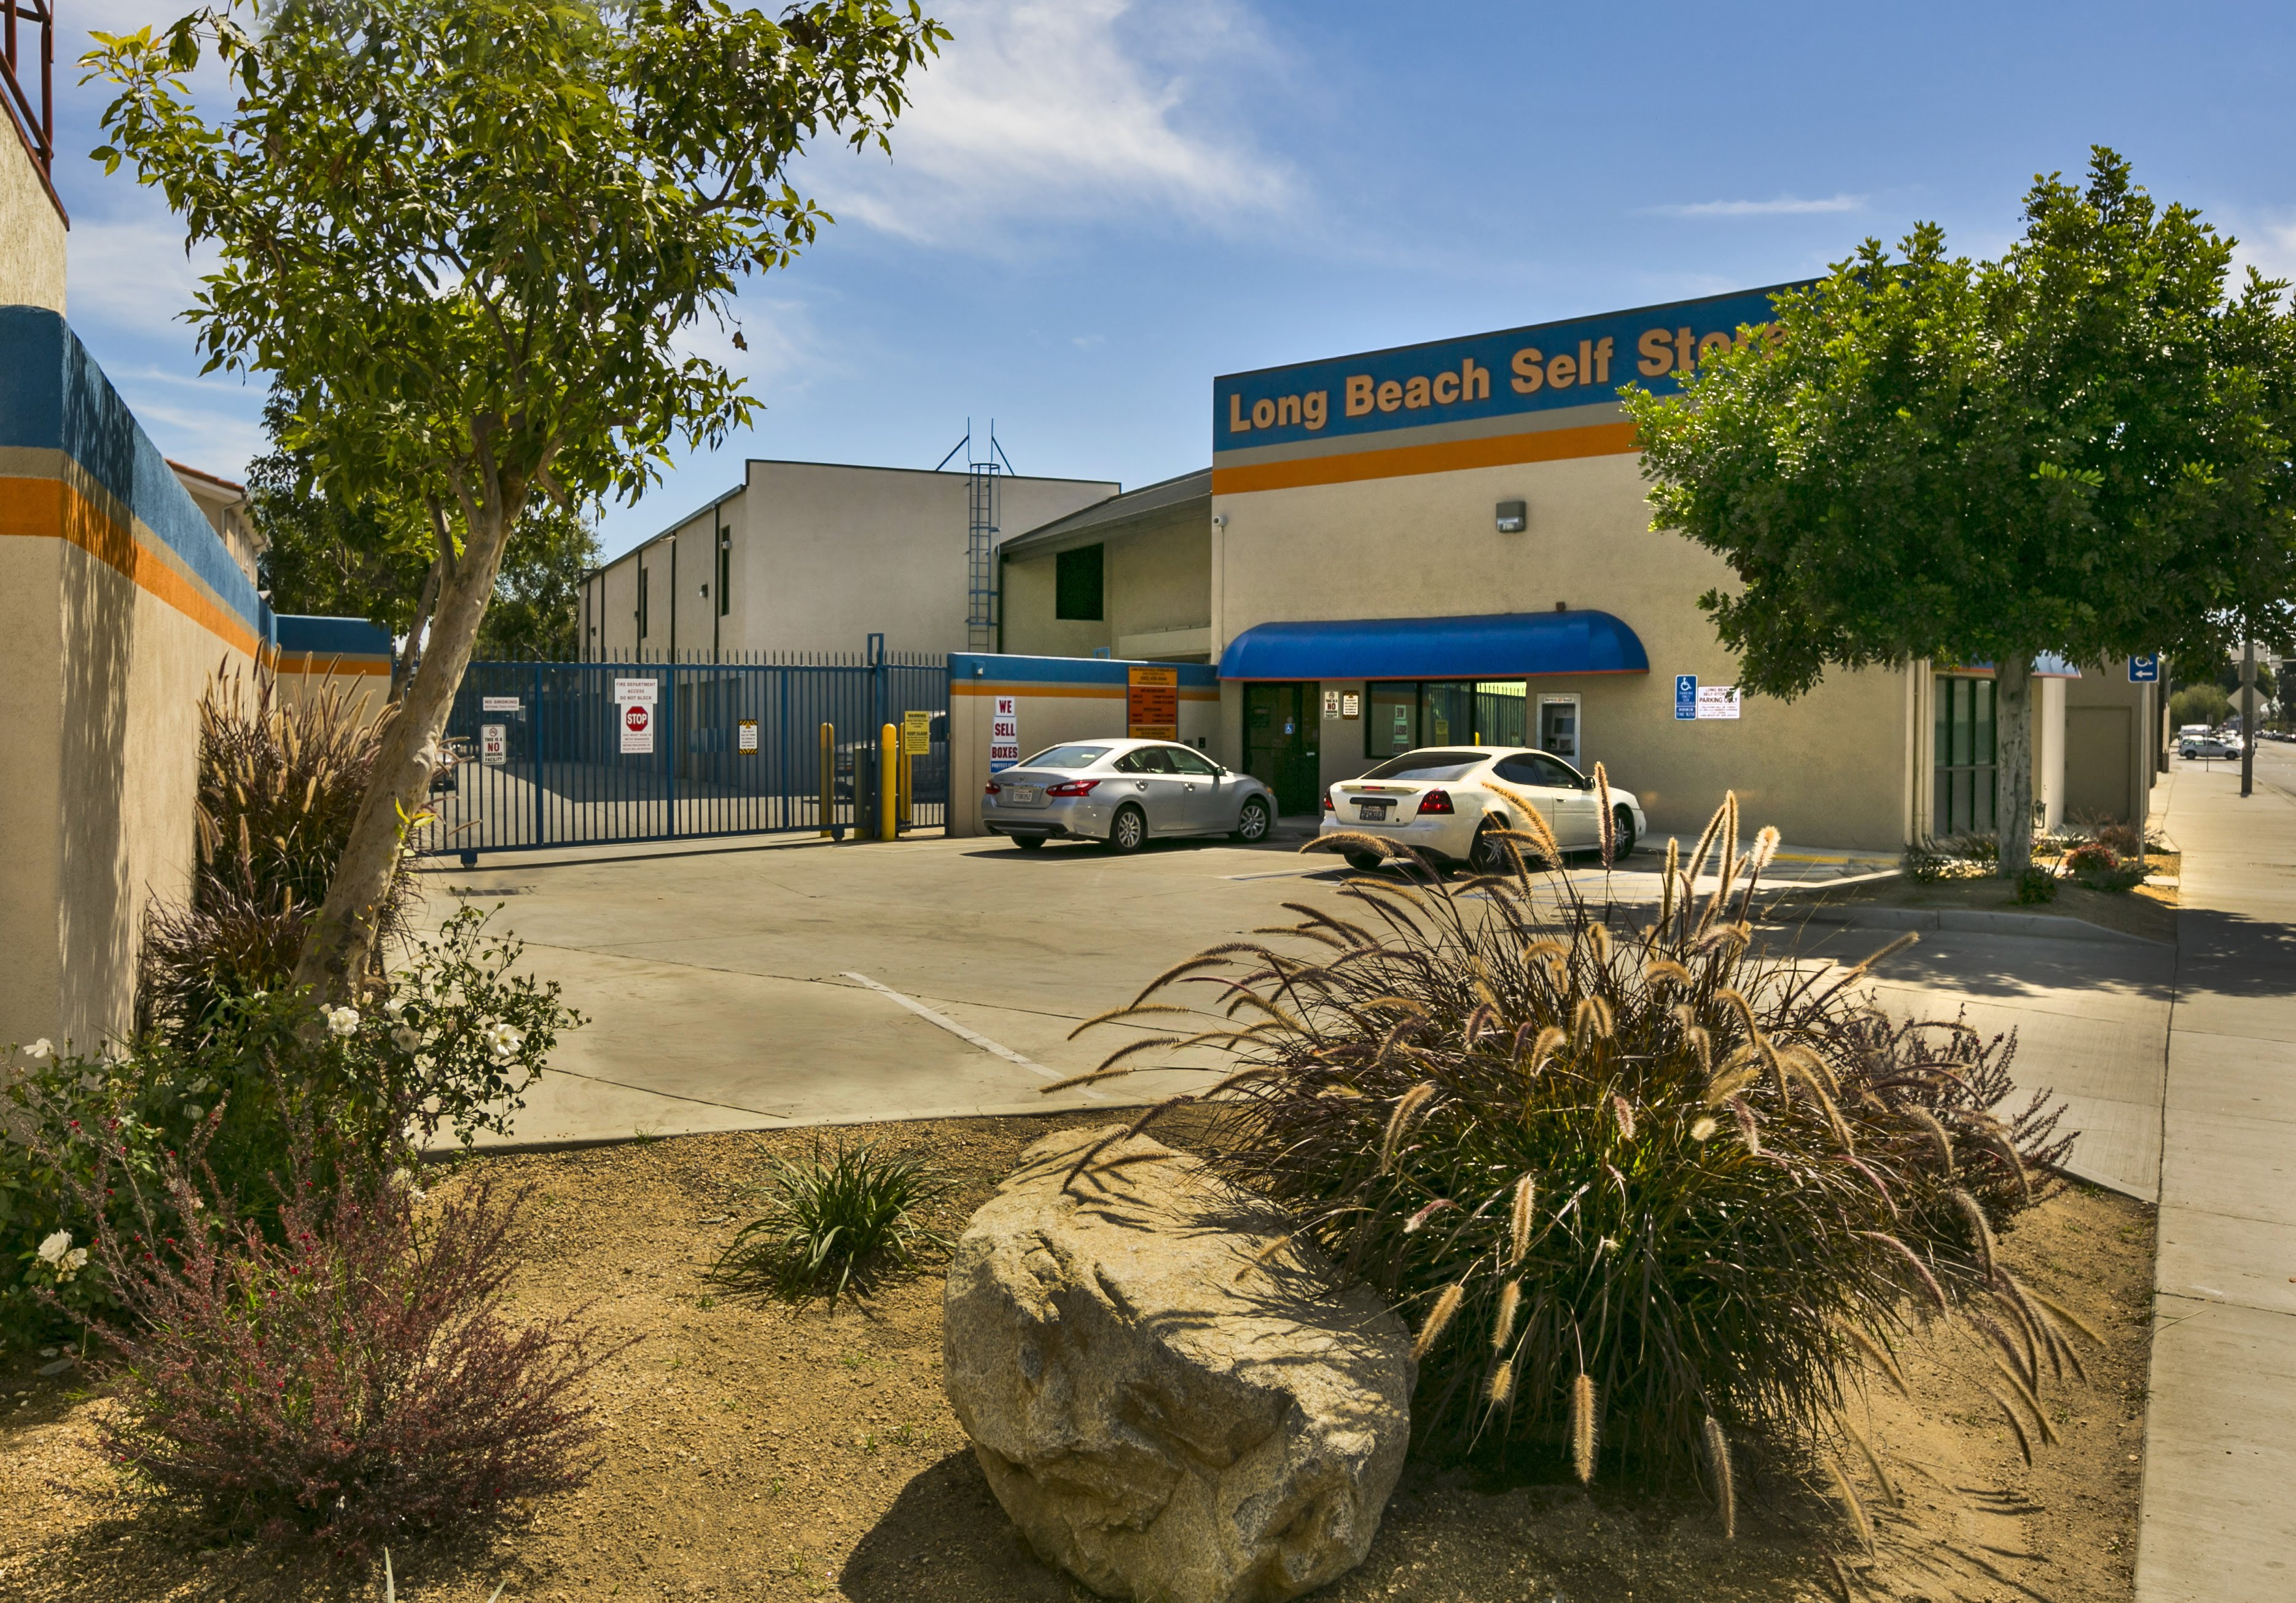 Long Beach Self Storage